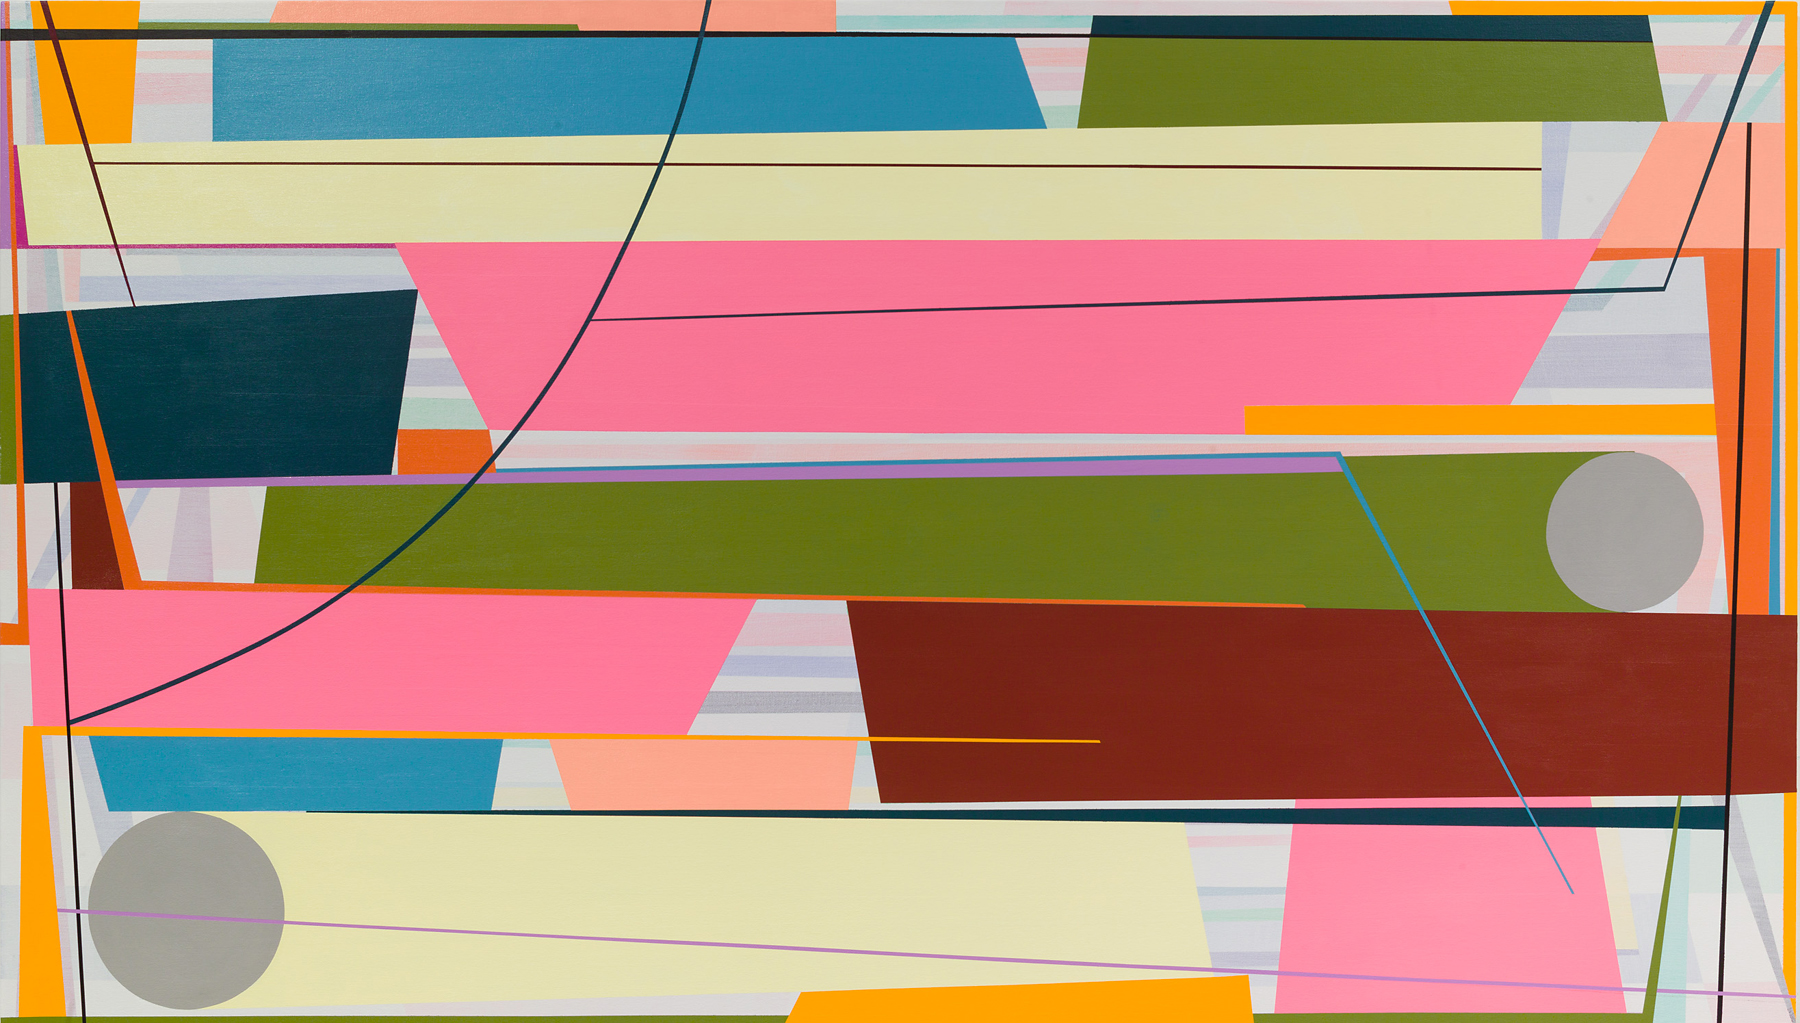 Gary Petersen, Spin Out, 2016, acrylic on canvas, 48 x 84 inches (courtesy of the artist and McKenzie Fine Art, New York)